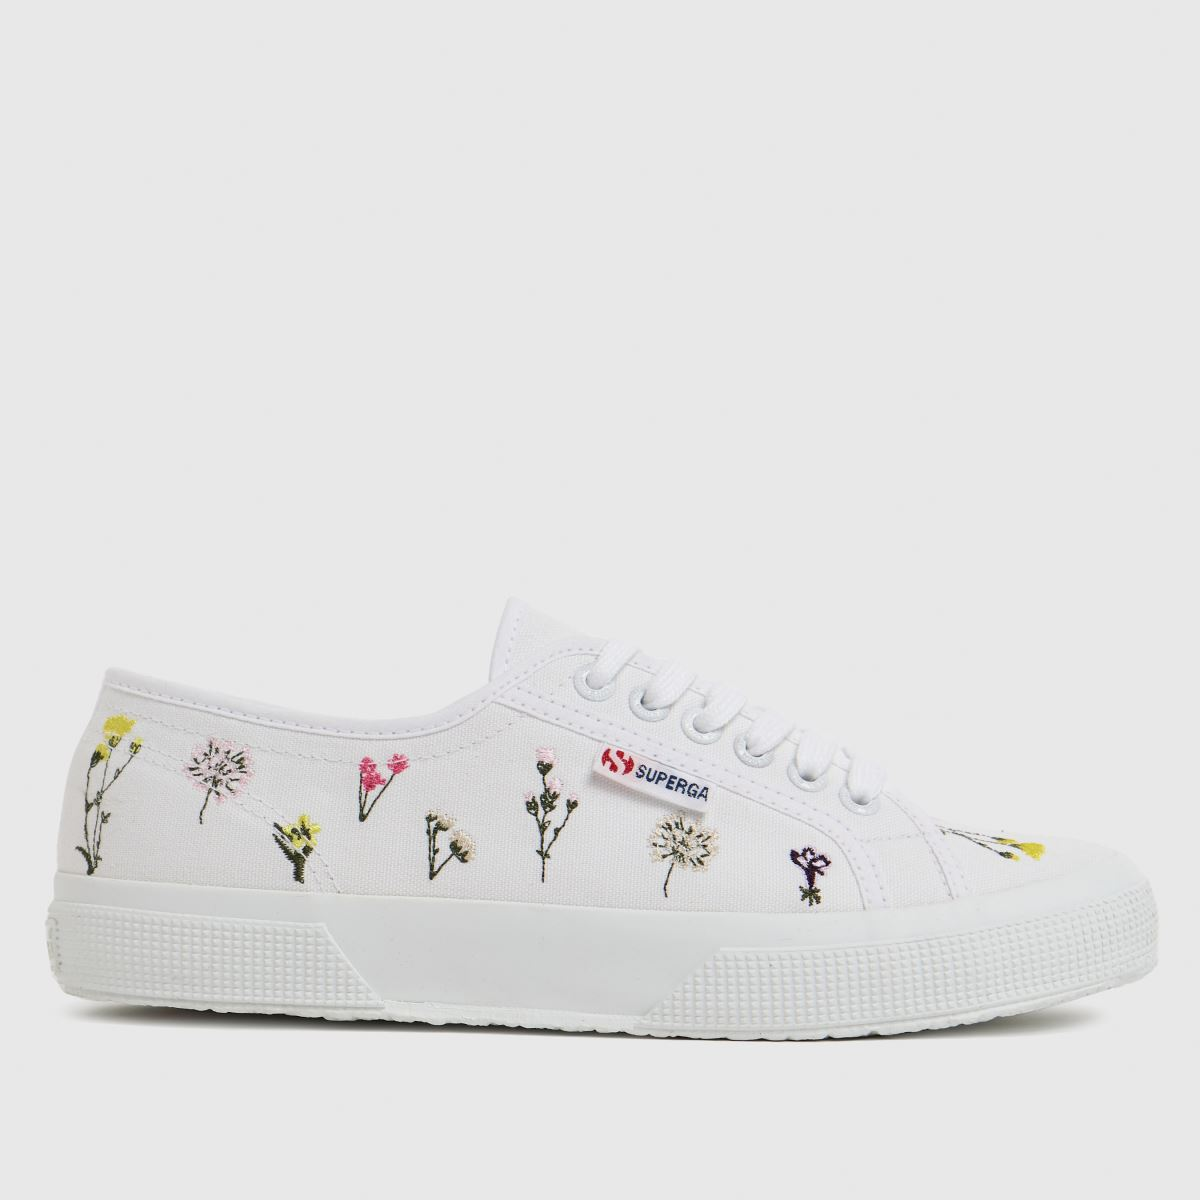 Superga White 2750 Flower Bloom Trainers